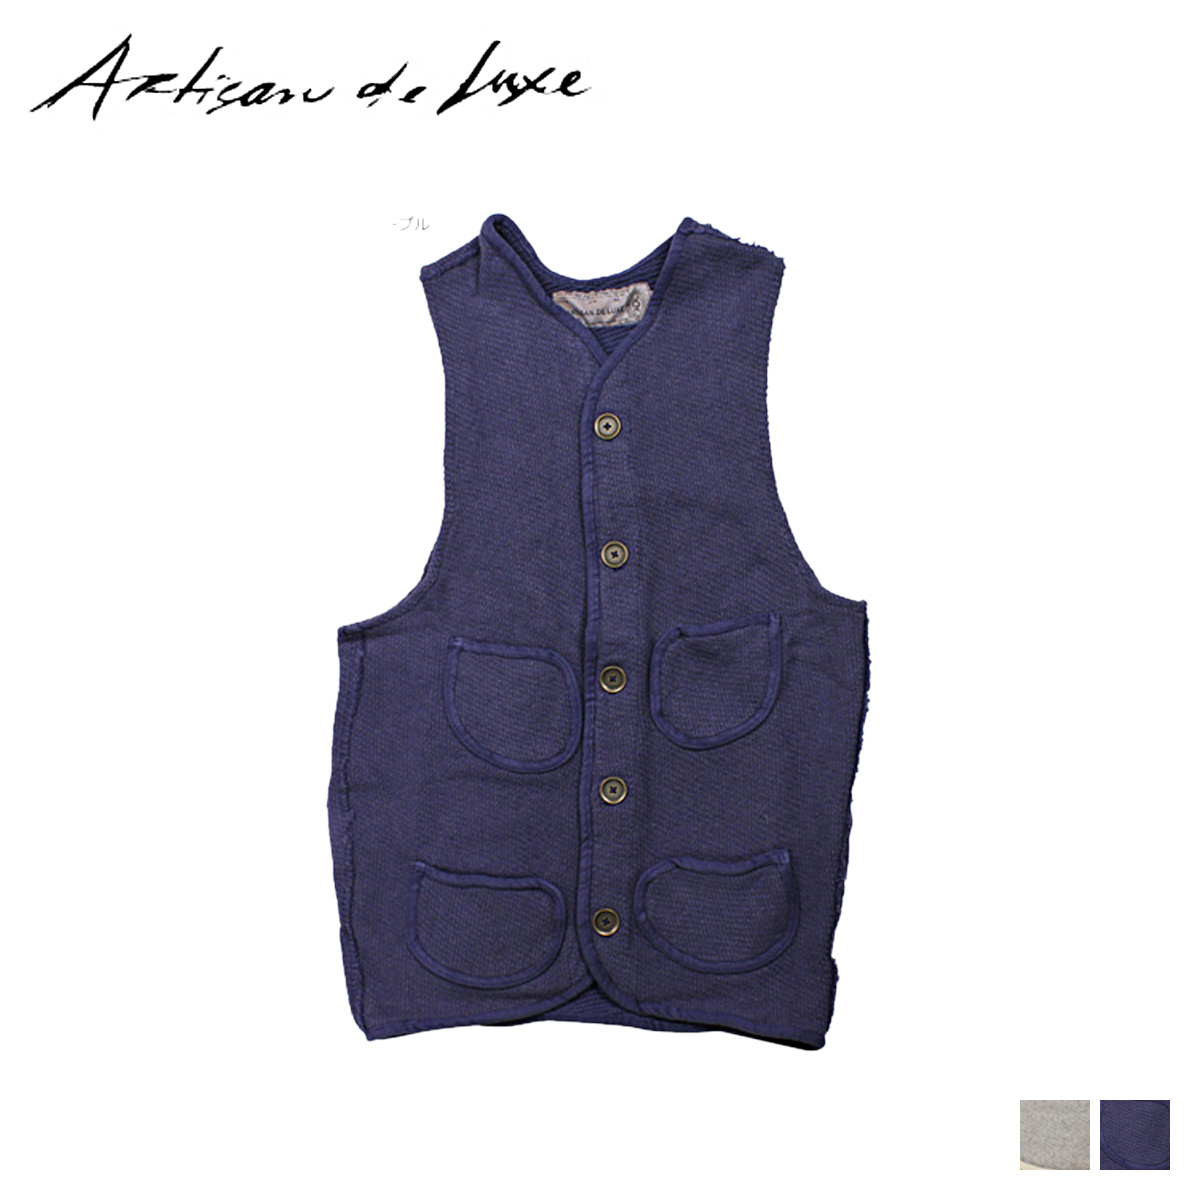 24e94b32af ALLSPORTS  Artisan luxury Artisan de Luxe knit vest in purple gray ...